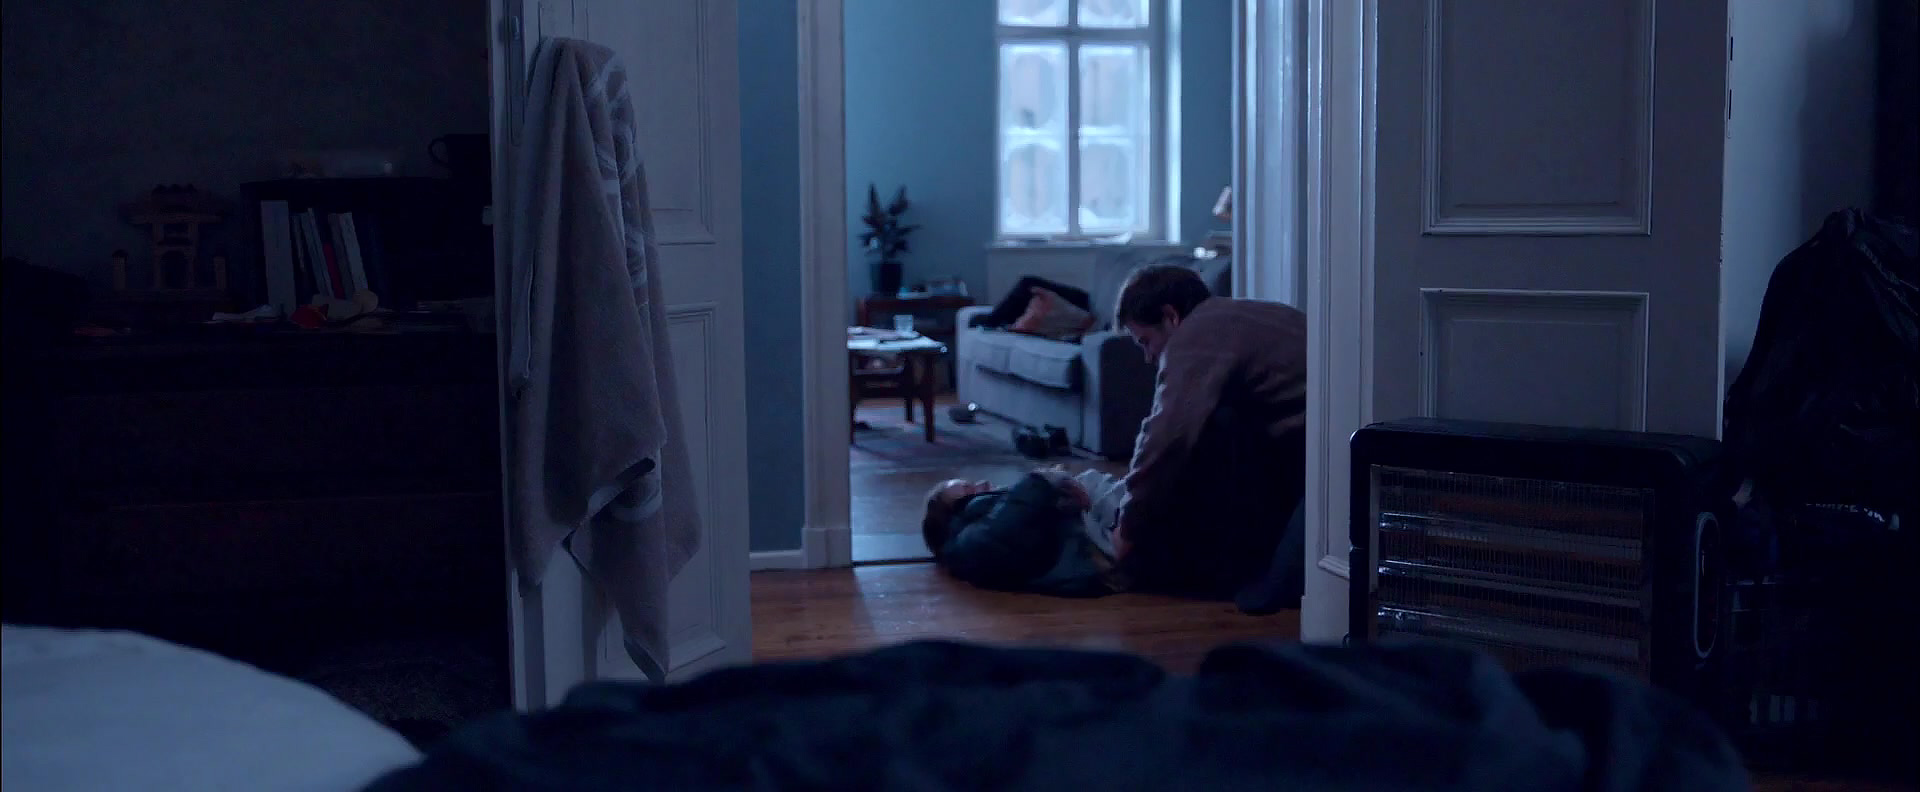 Watch Teresa palmer sex on the floor in berlin syndrome movie video